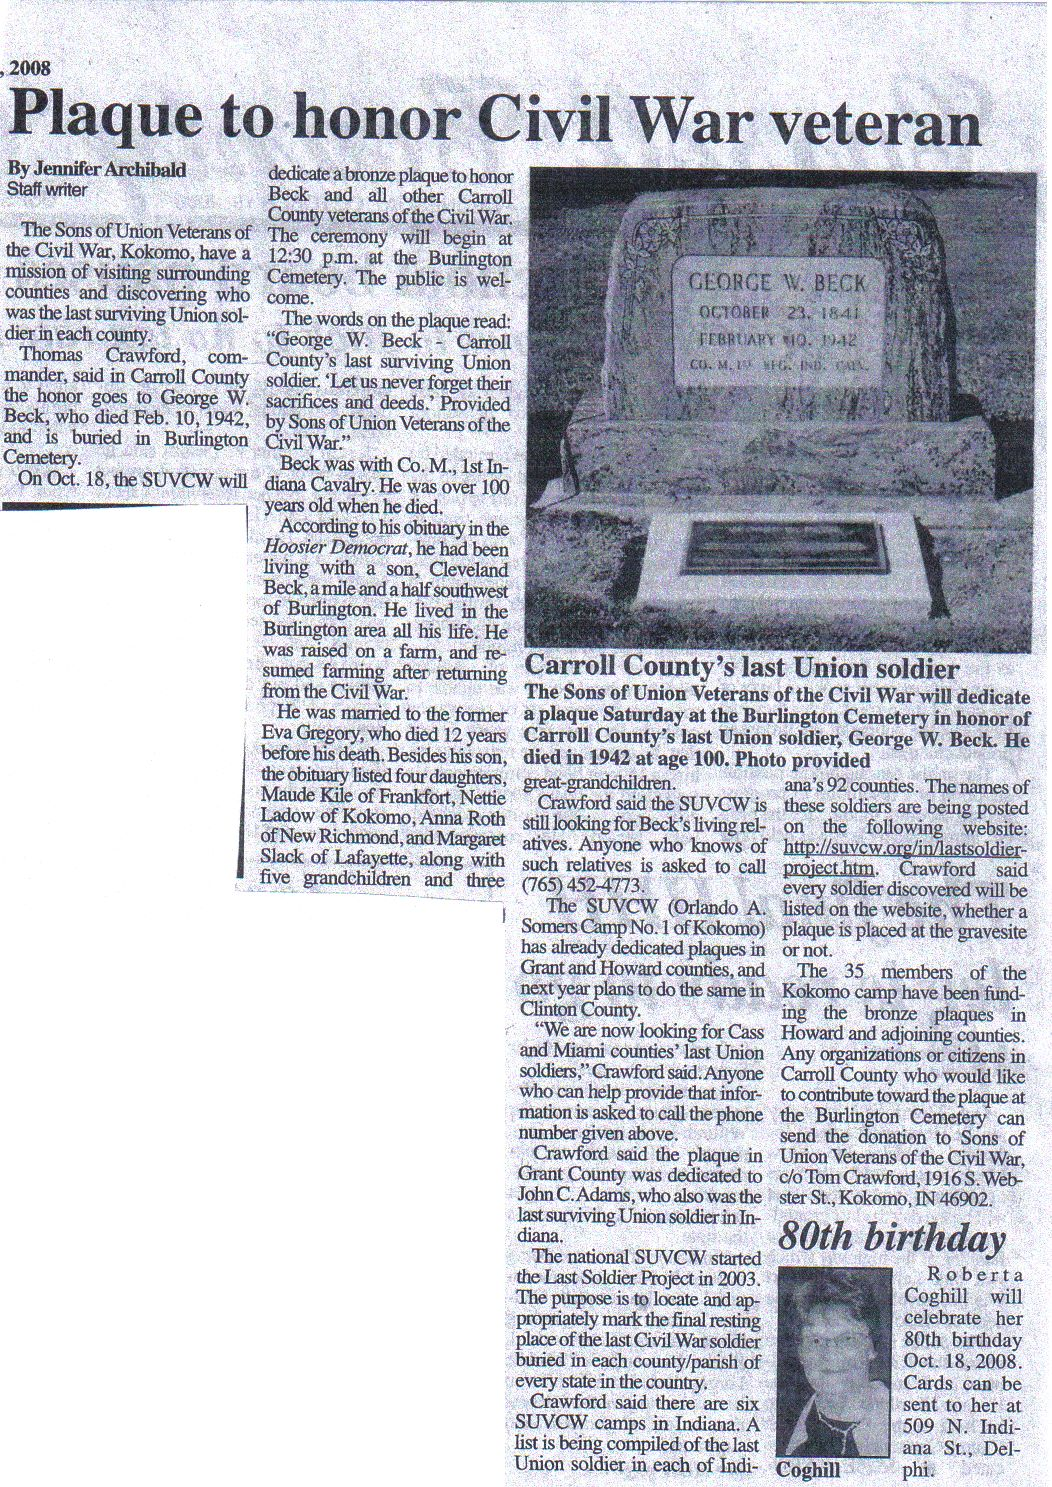 Indiana clay county harmony - Click Here To See A Copy Of An Article That Appeared In The Carroll County Comet Newspaper October 15th 2008